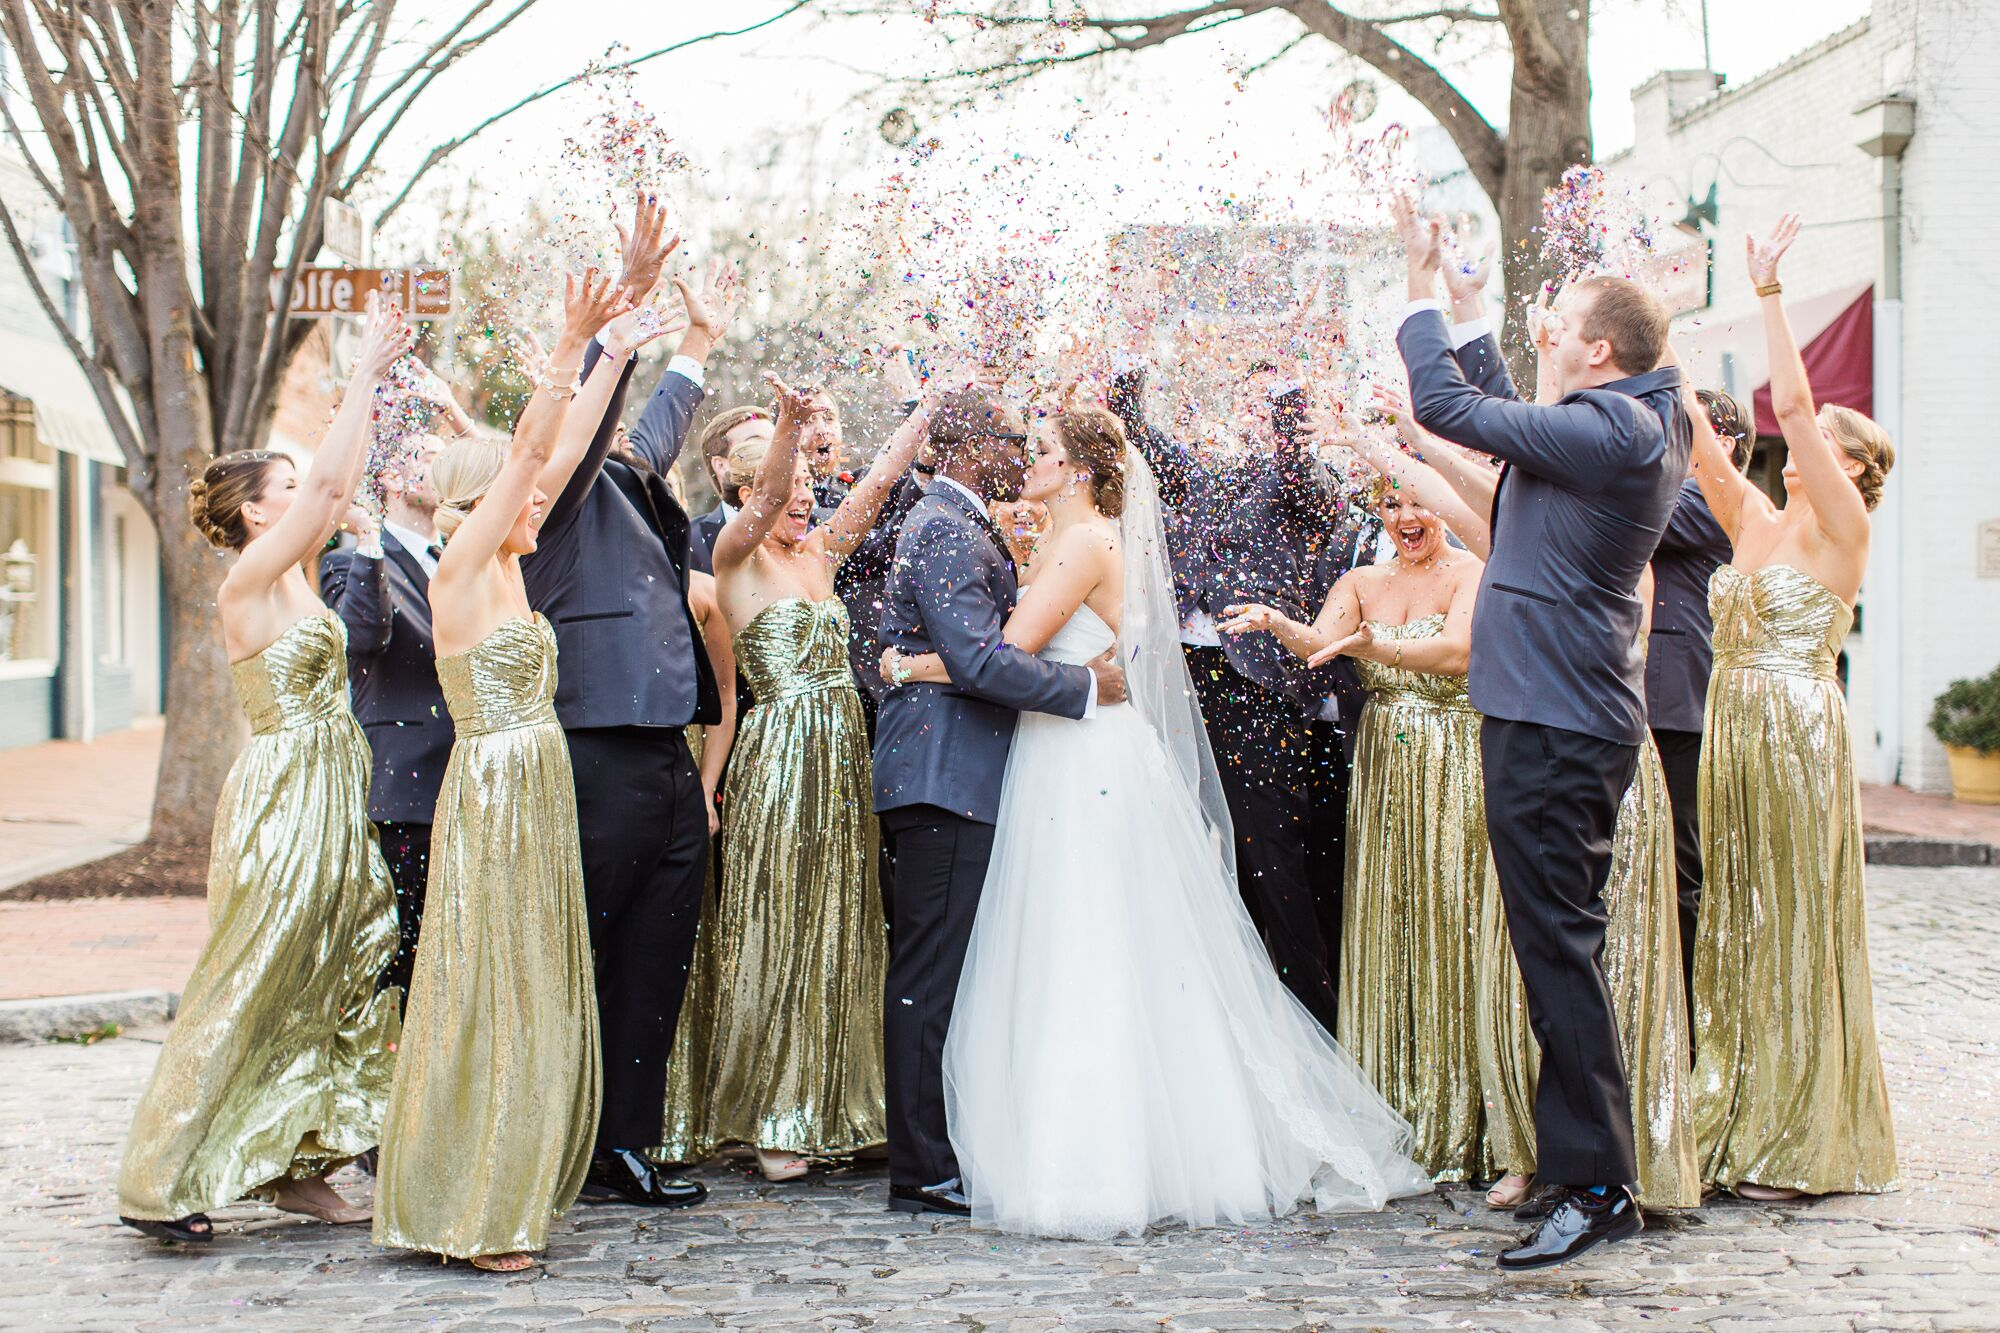 An Urban-Meets-Great Gatsby New Year's Eve Wedding at Cobblestone Hall in Raleigh, North Carolina